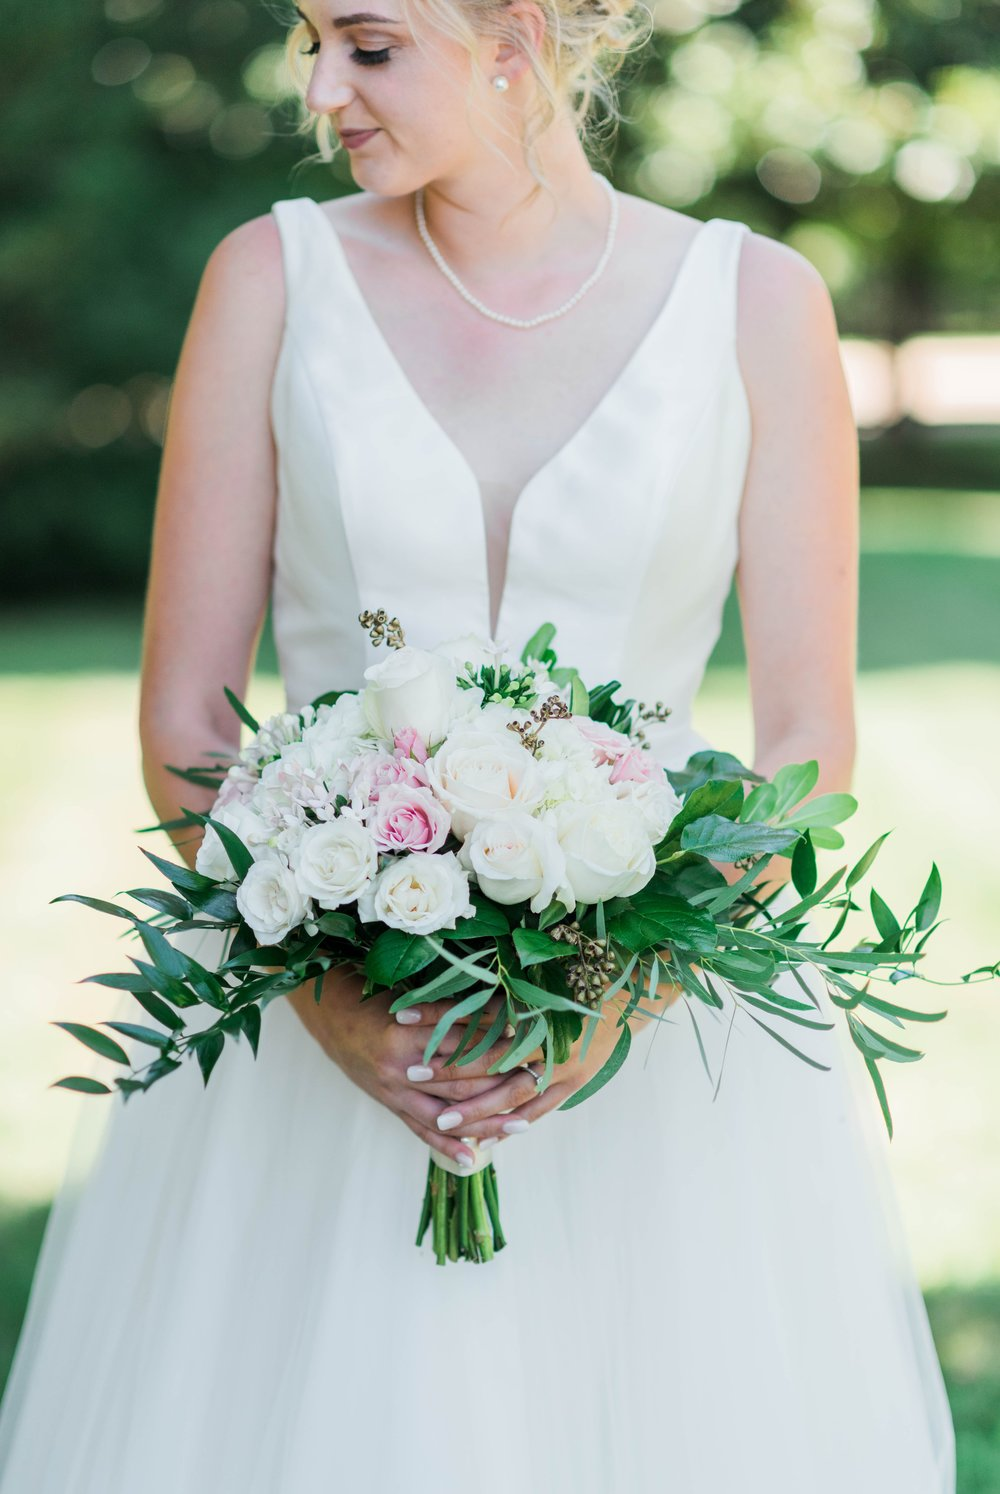 westmanorestate_entwinedevents_lynchburgweddingphotographer_Virginiaweddingphotographer_kateyam 34.jpg